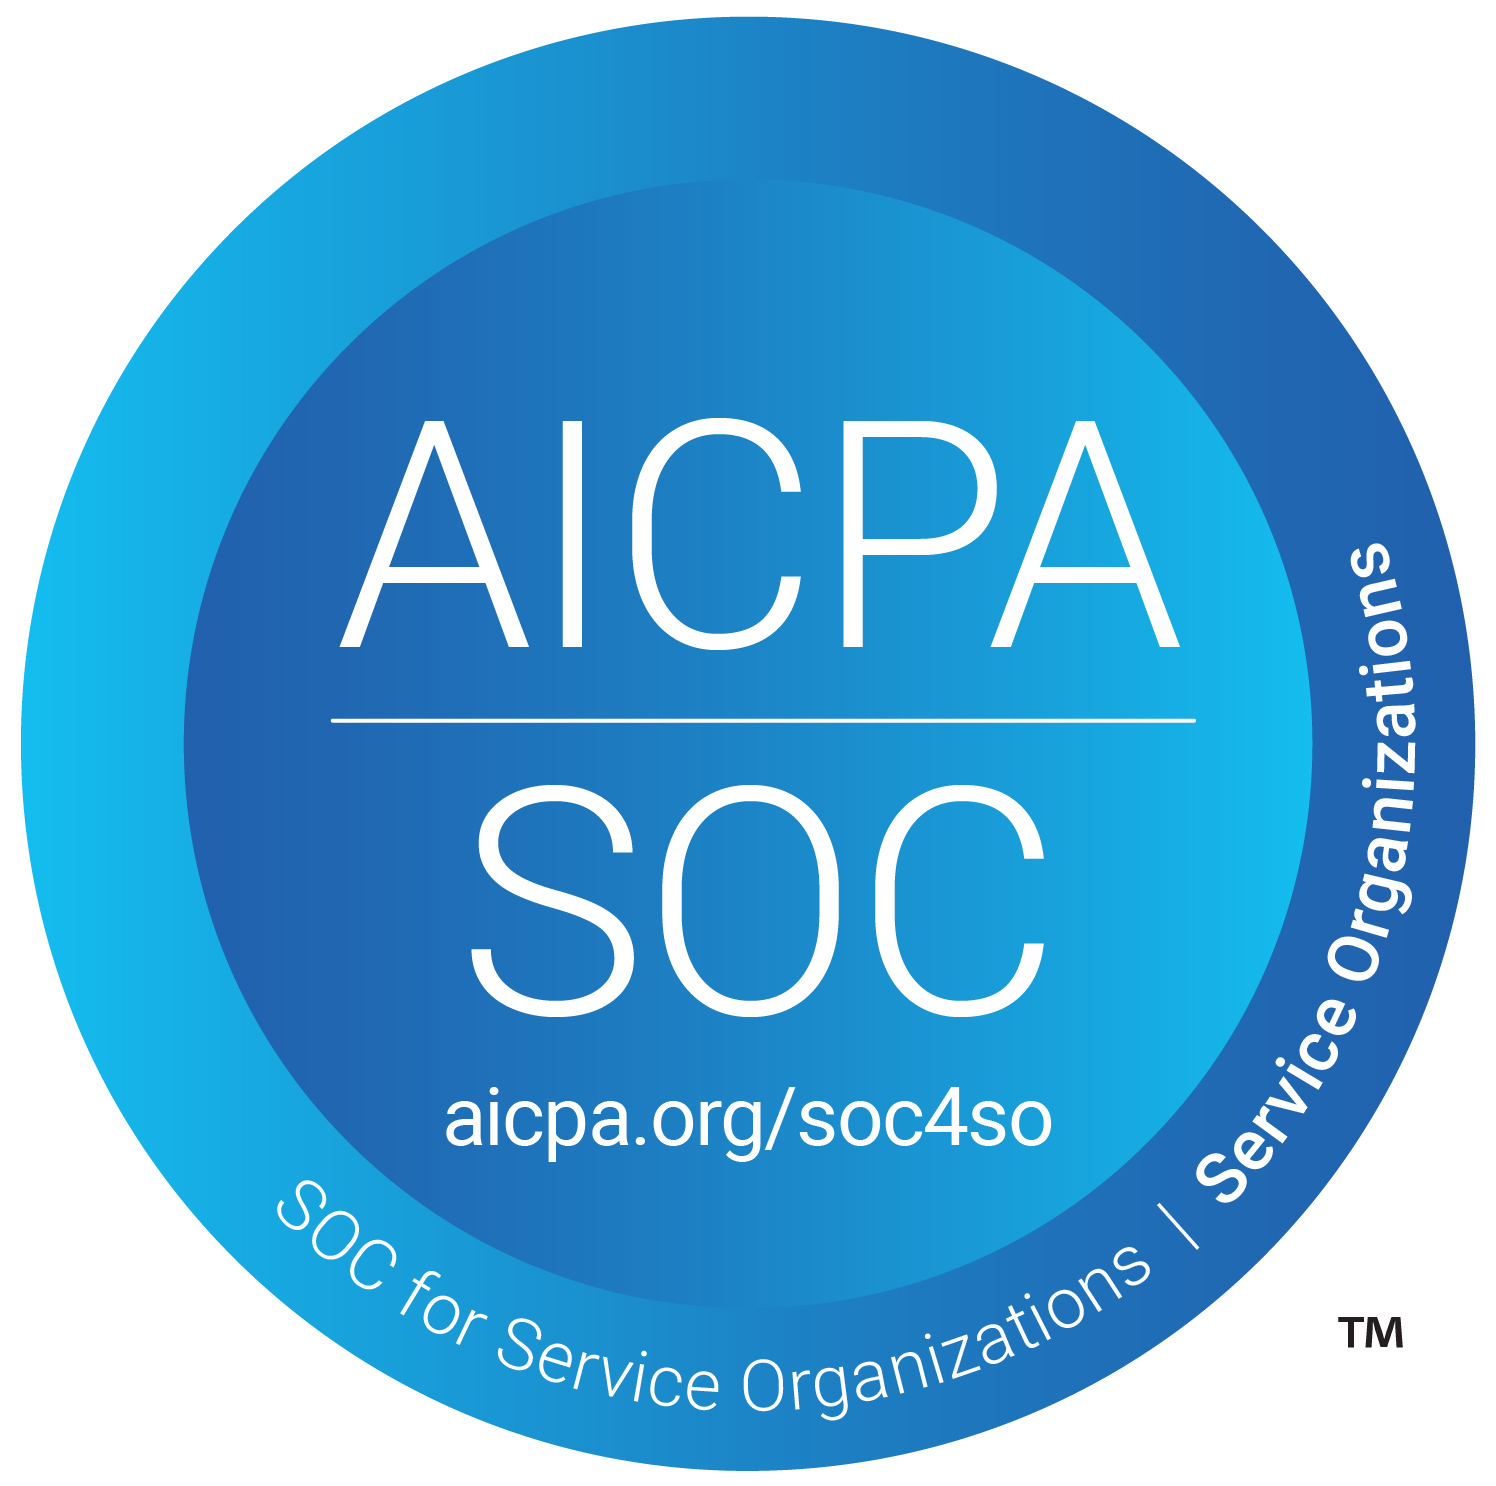 Takeaways From Securing A Cloud-Powered, SOC2-Certified